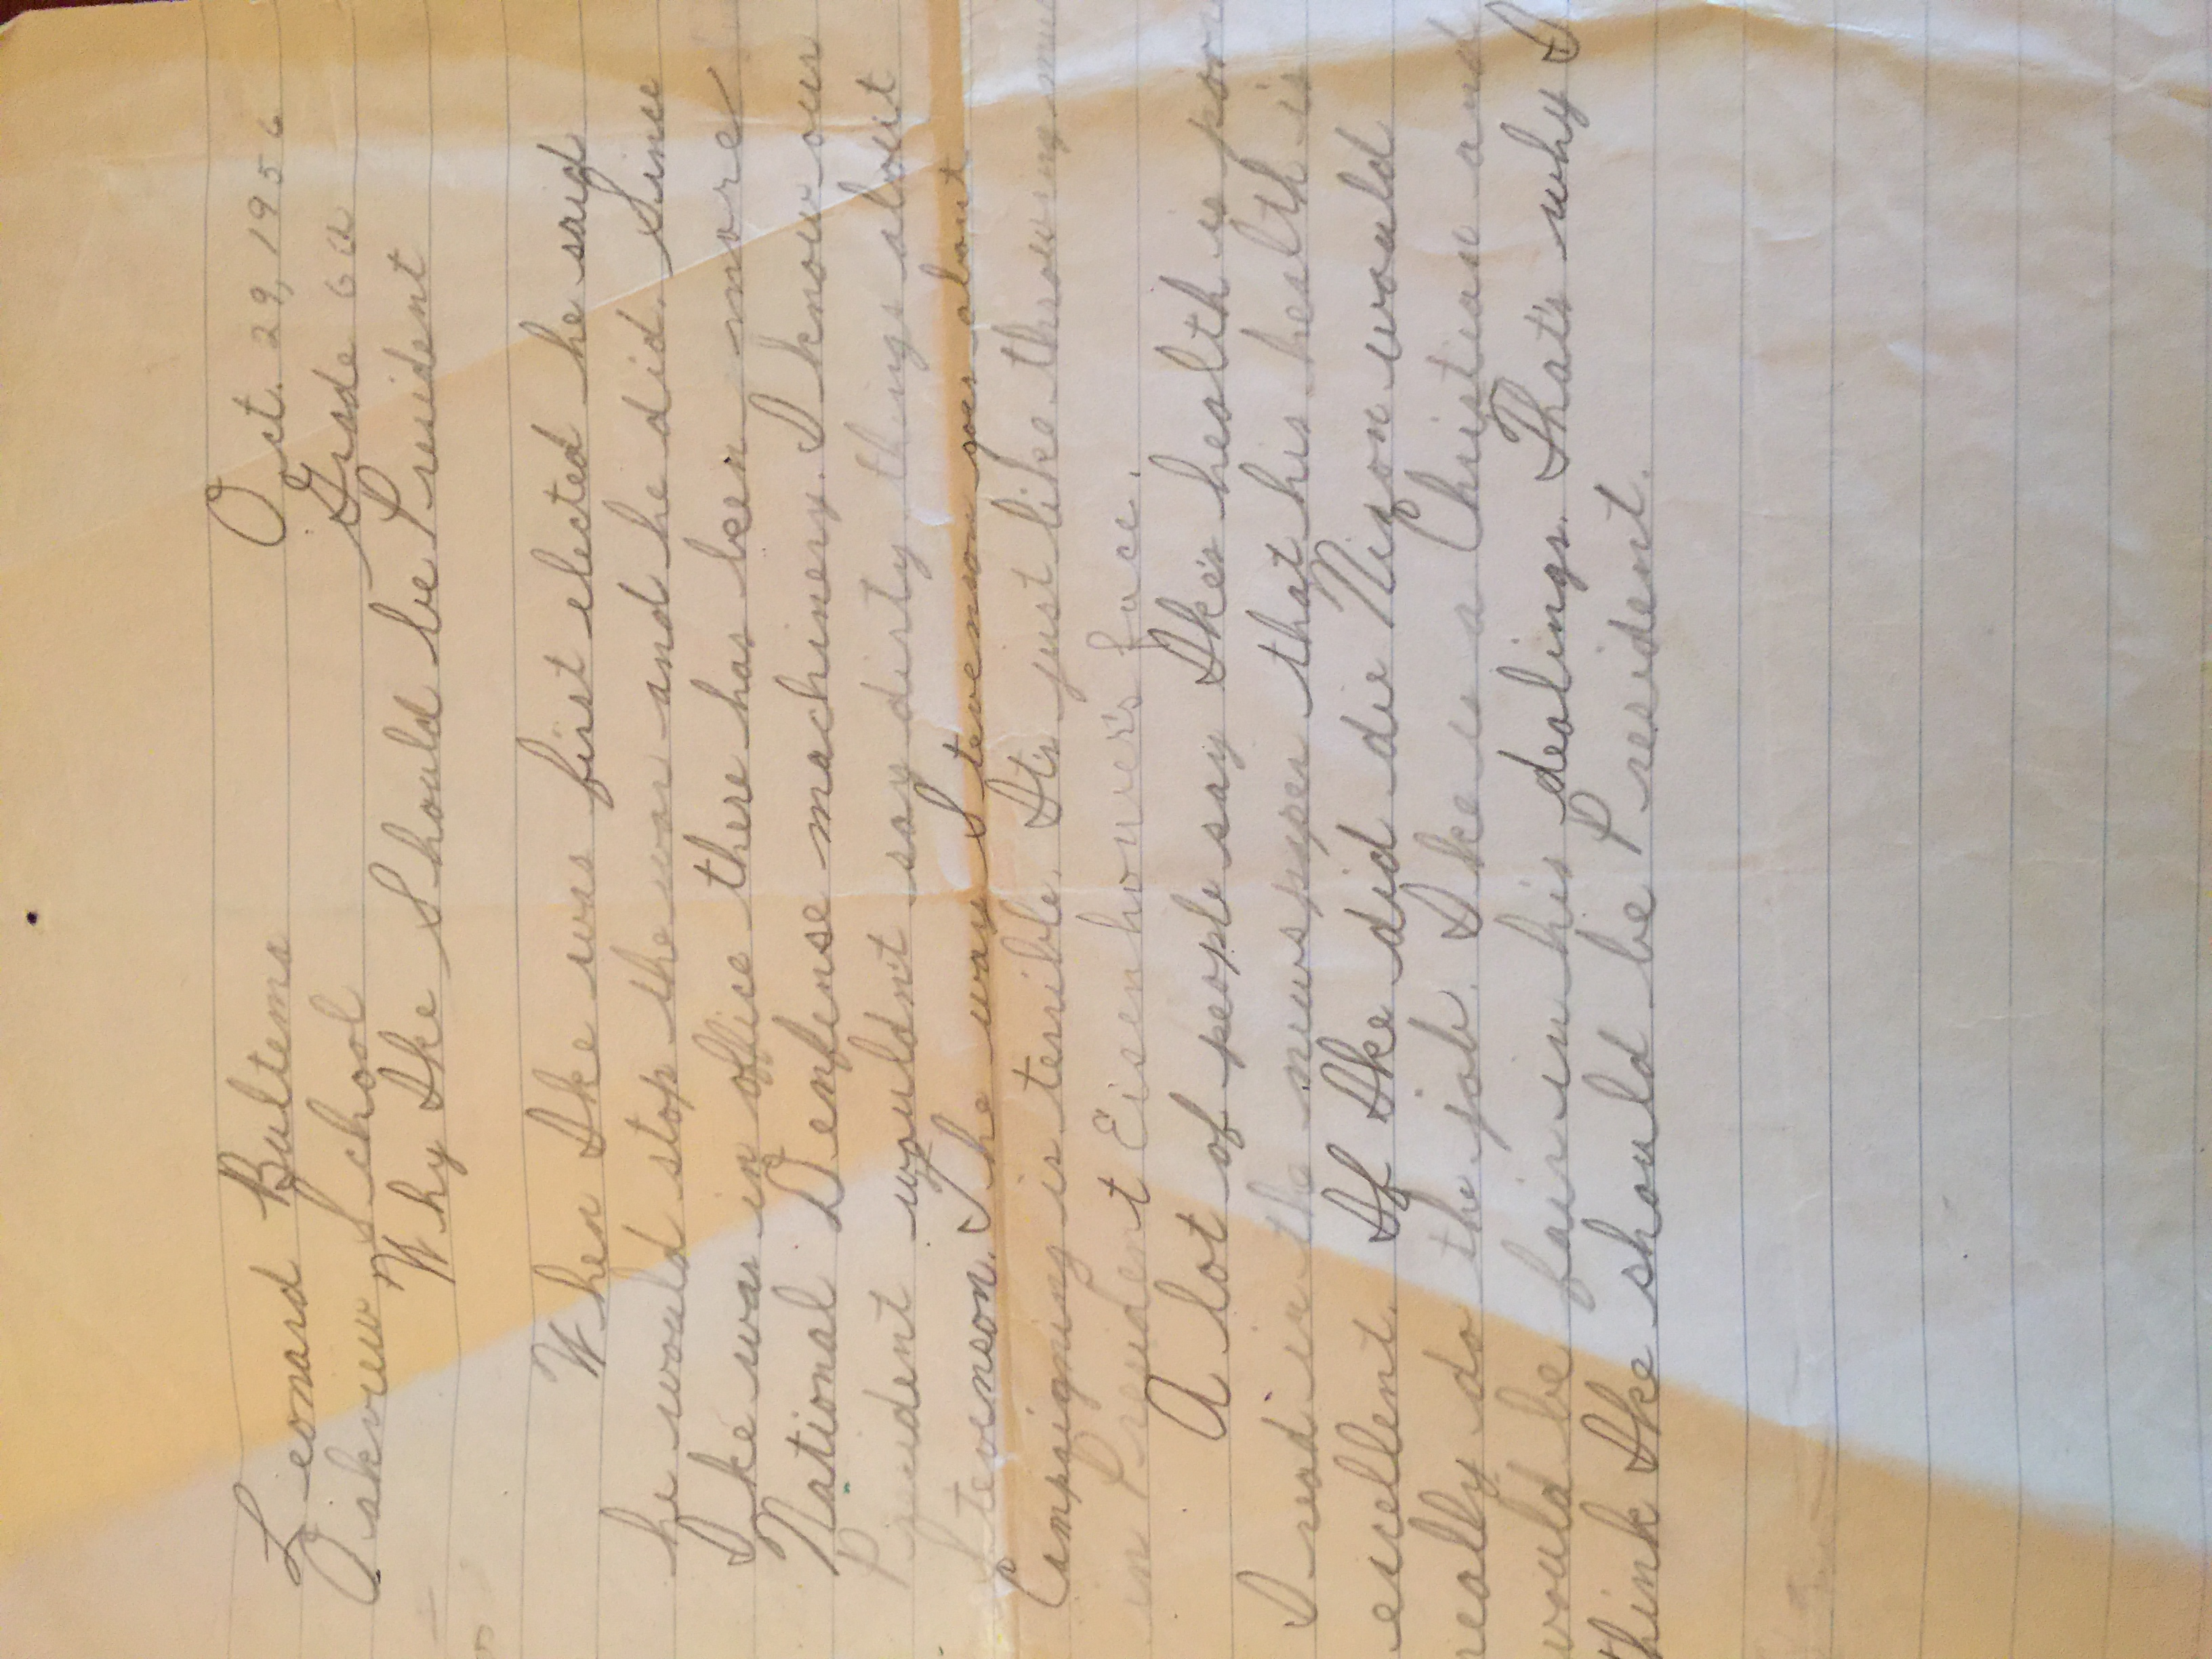 While Jan was 4, Len was writing a paper on why Ike should be President